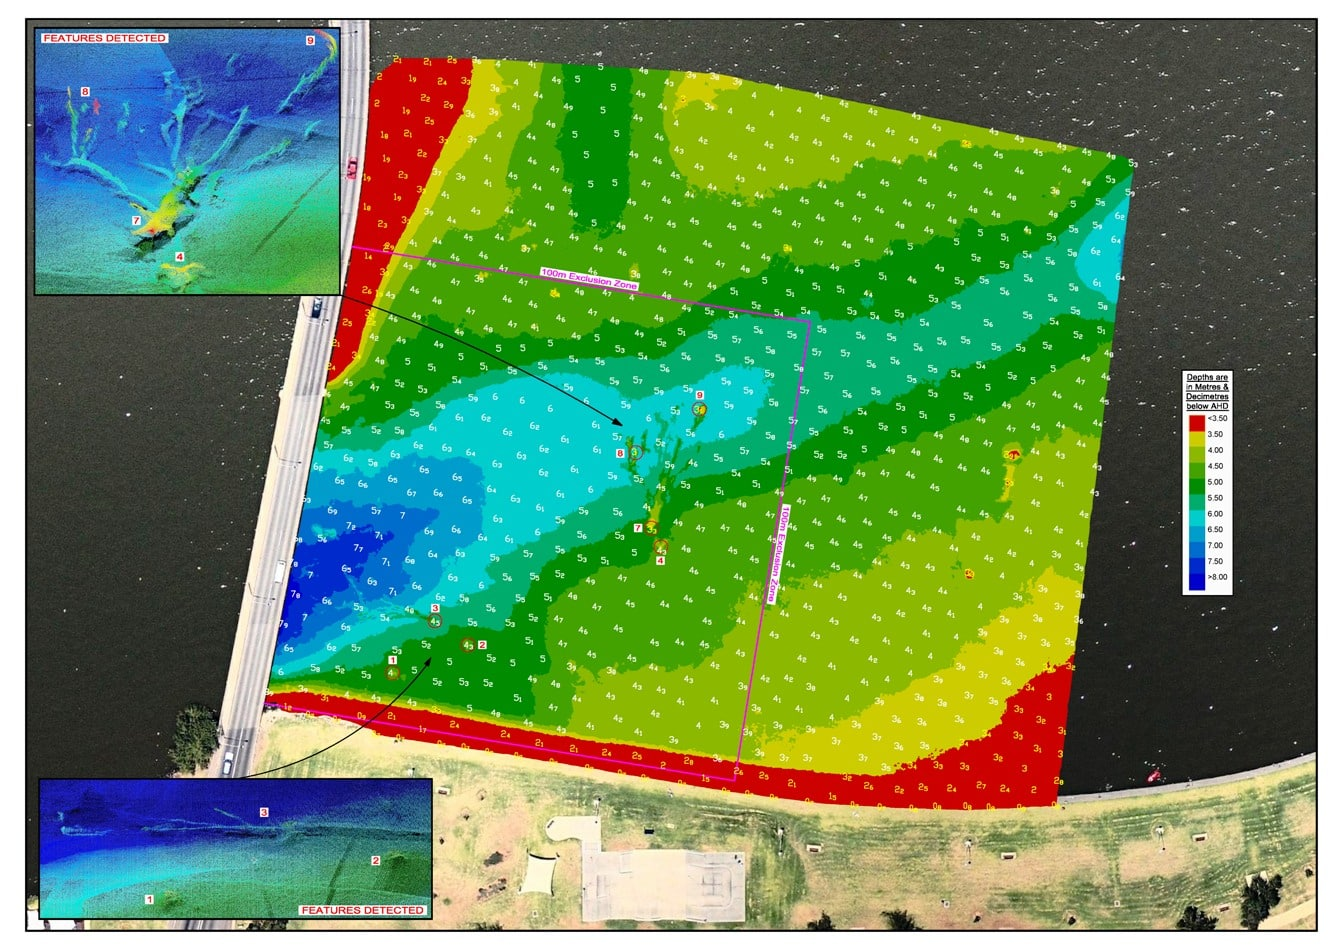 High Res images from the survey conducted on Lake